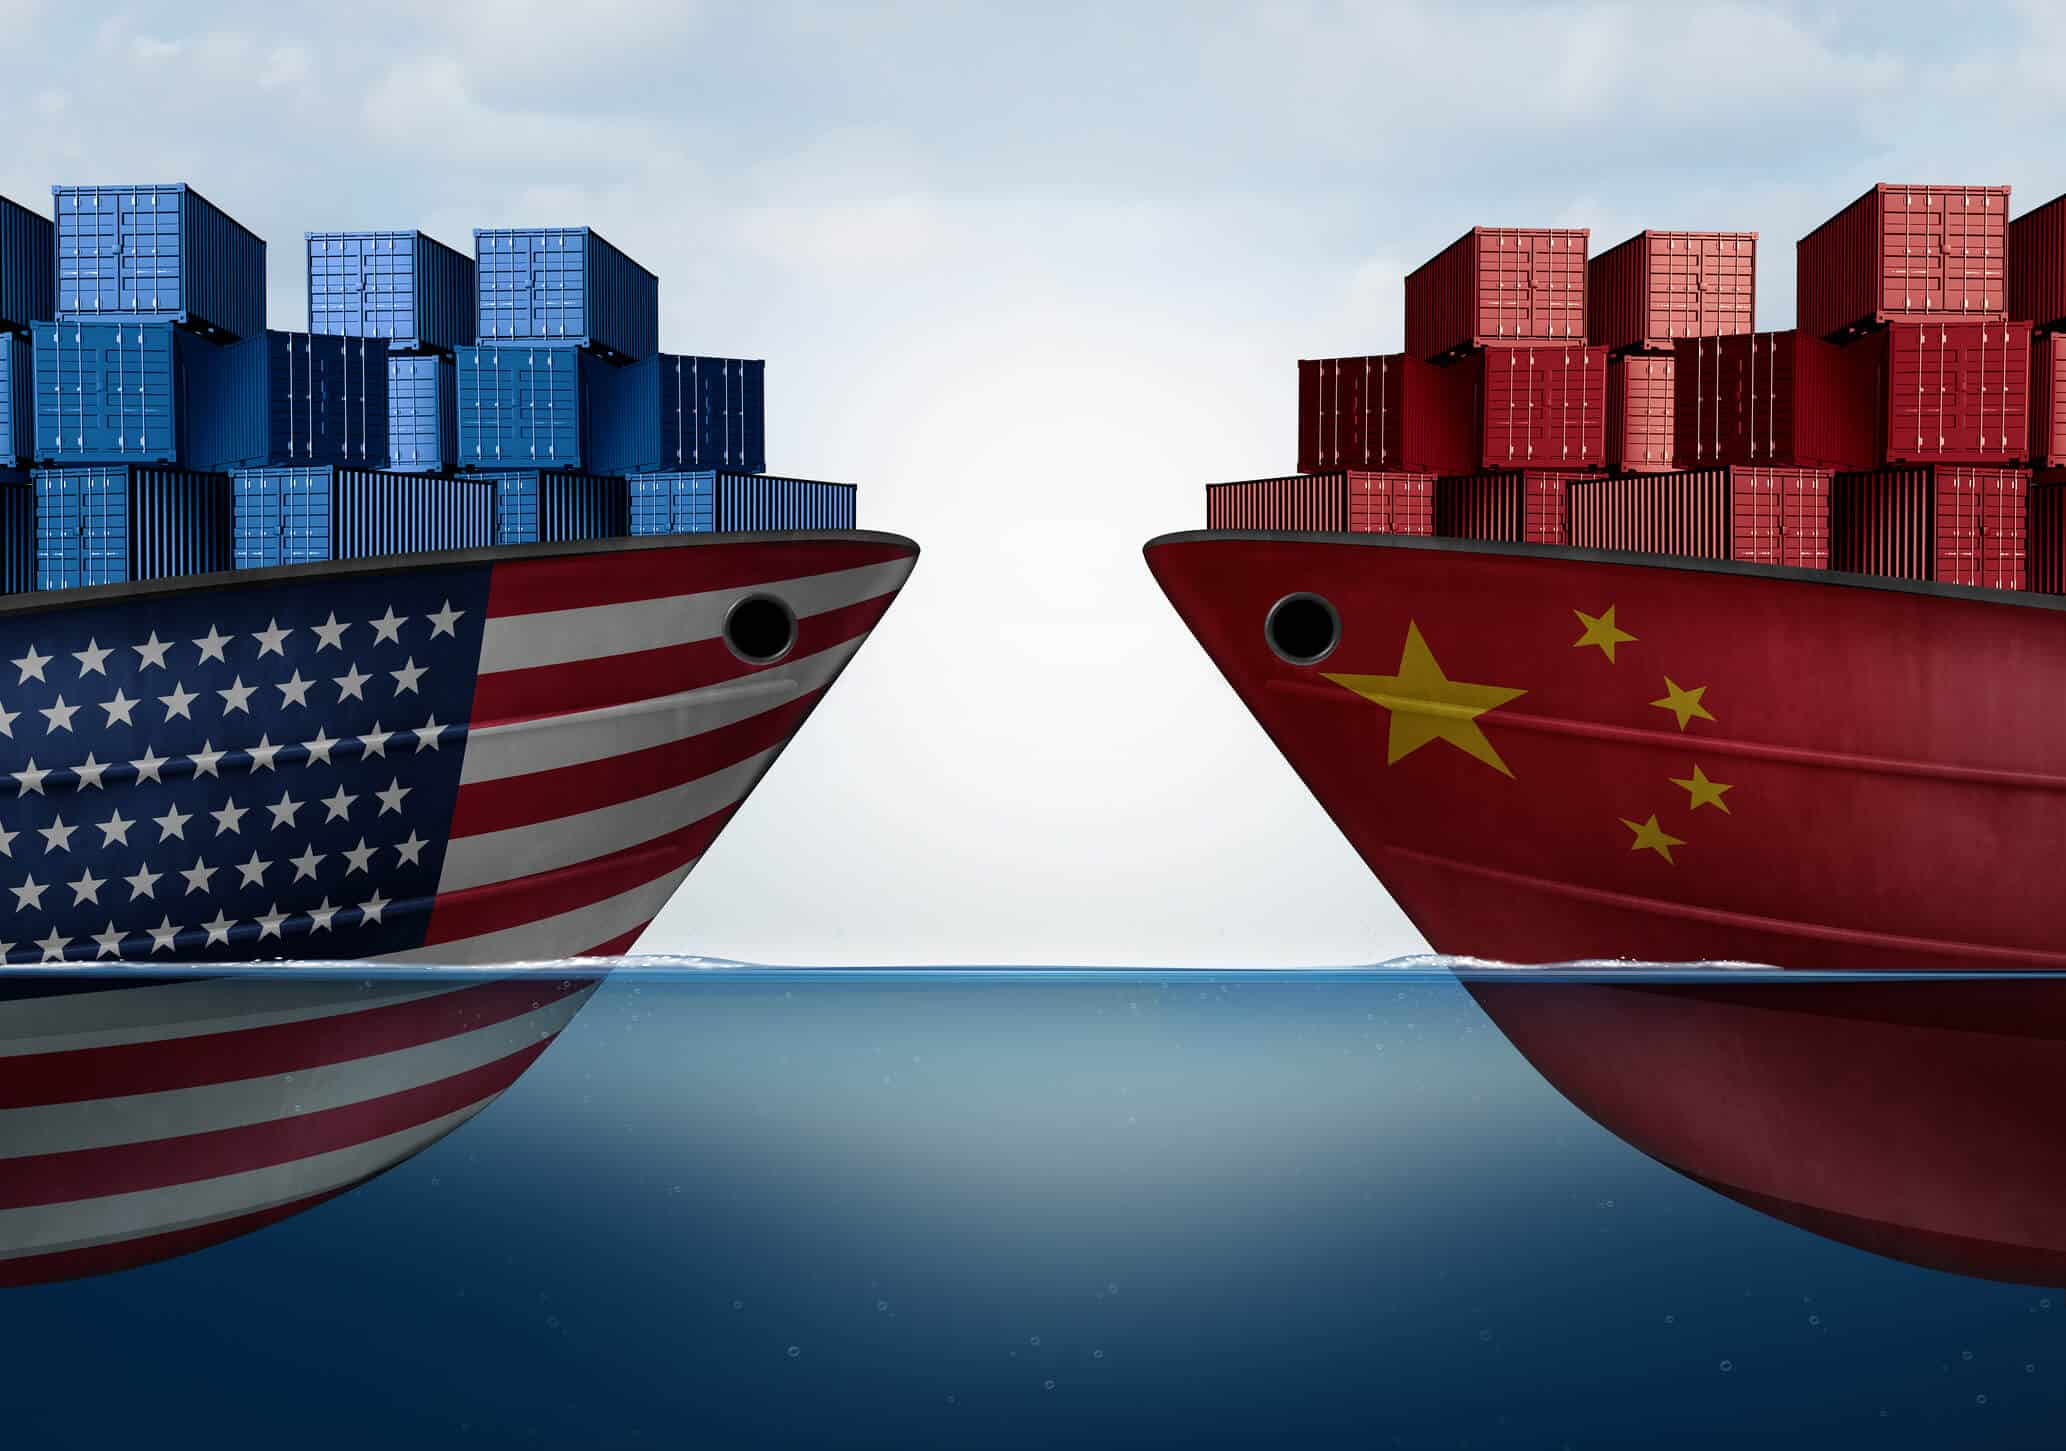 China Considers Facing Tariff than Bend to US Pressure